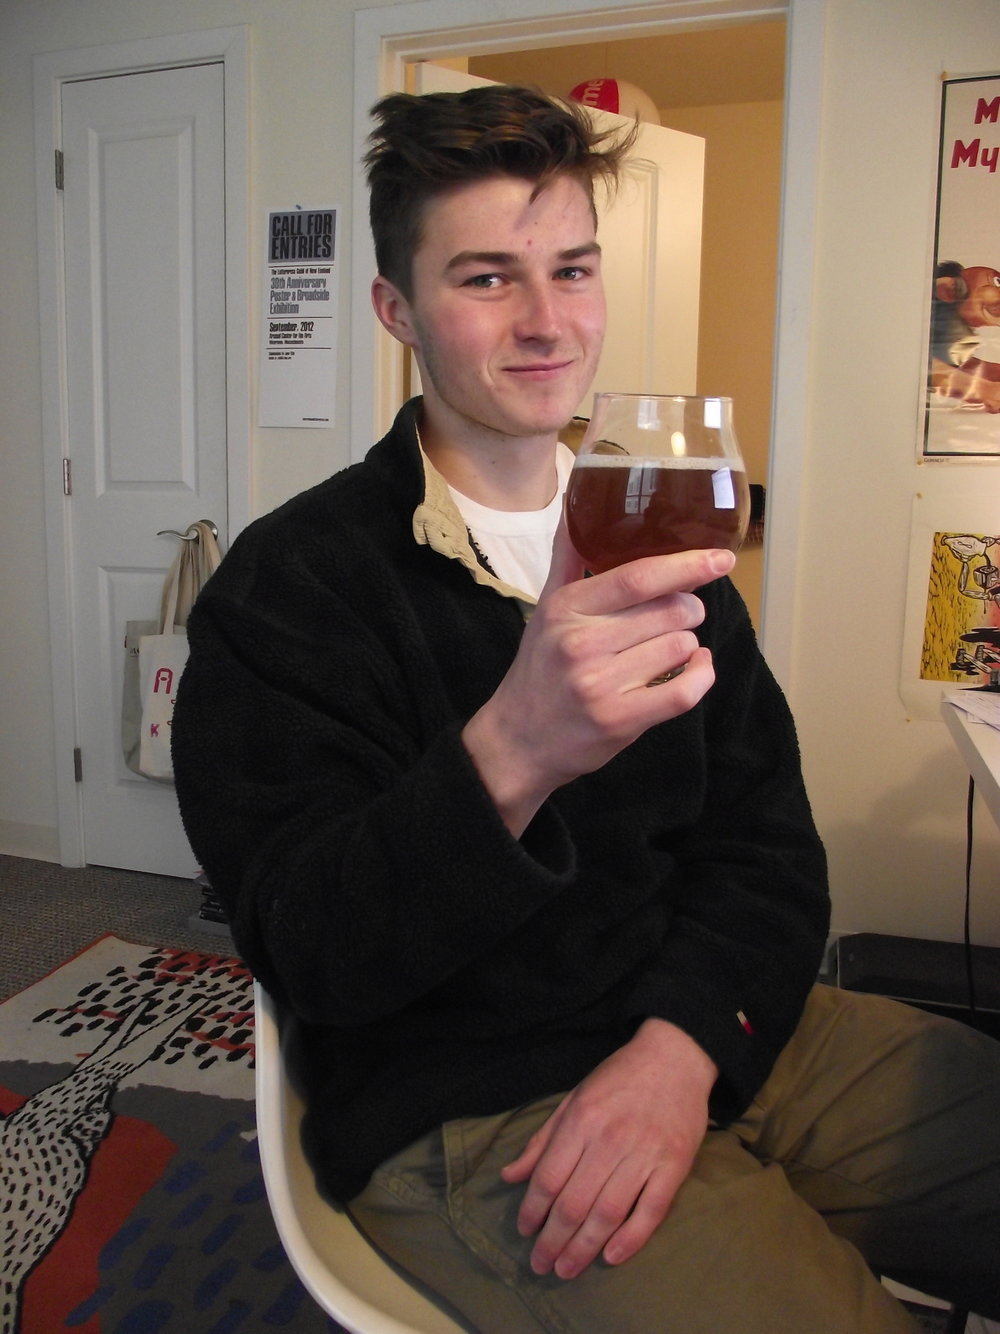 Steve Bogdan is a communications major at UConn as well as a home brewer. His latest creation is called Gone Off Tabs, a North Eastern-style IPA. (Dan Wood/The Daily Campus)